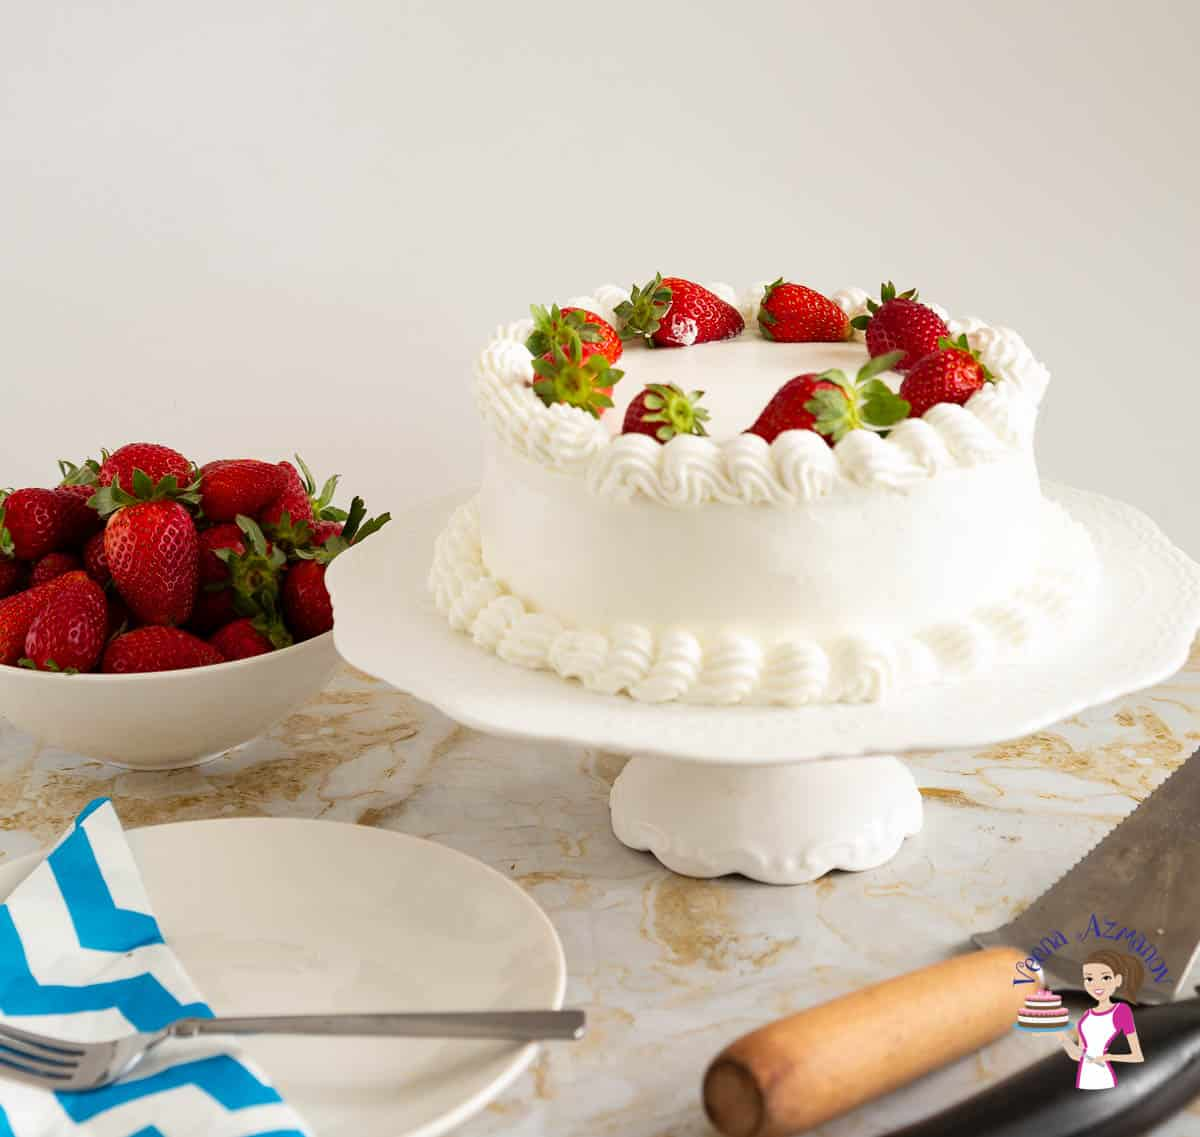 A frosted strawberry cake with whipped cream